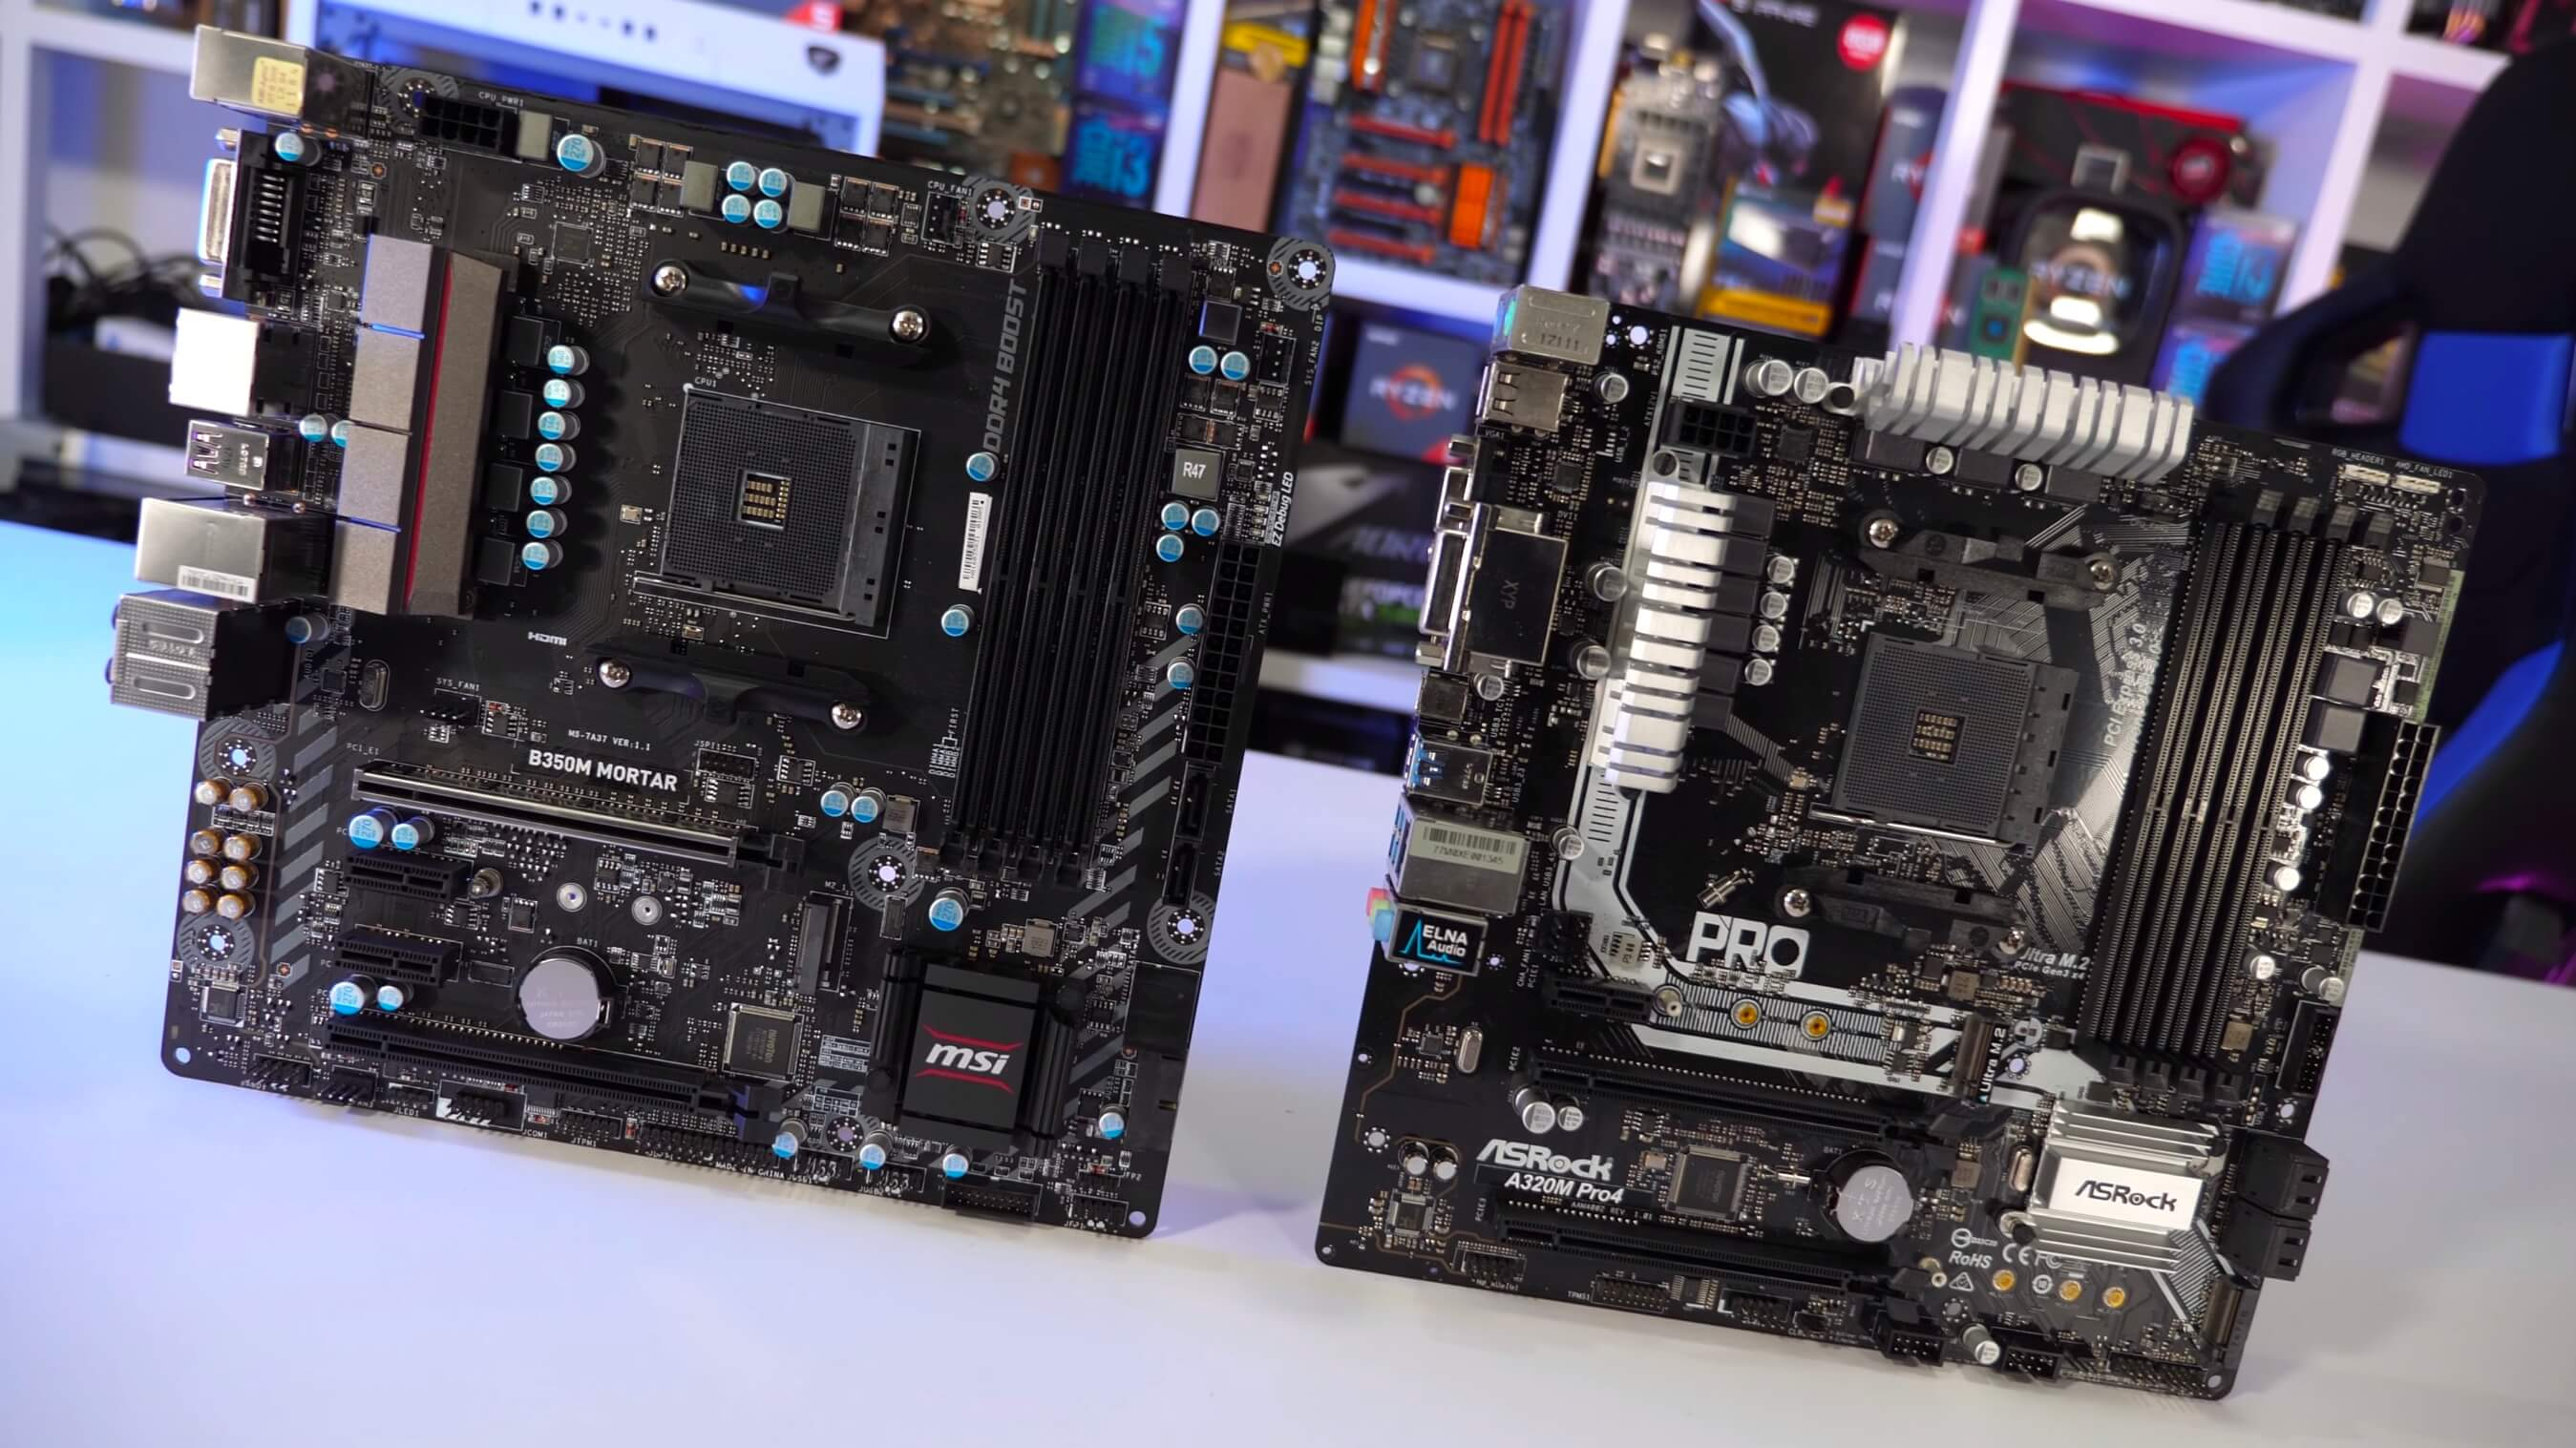 Don't Bother with A320 Motherboards, Go for AMD's B350 Instead for